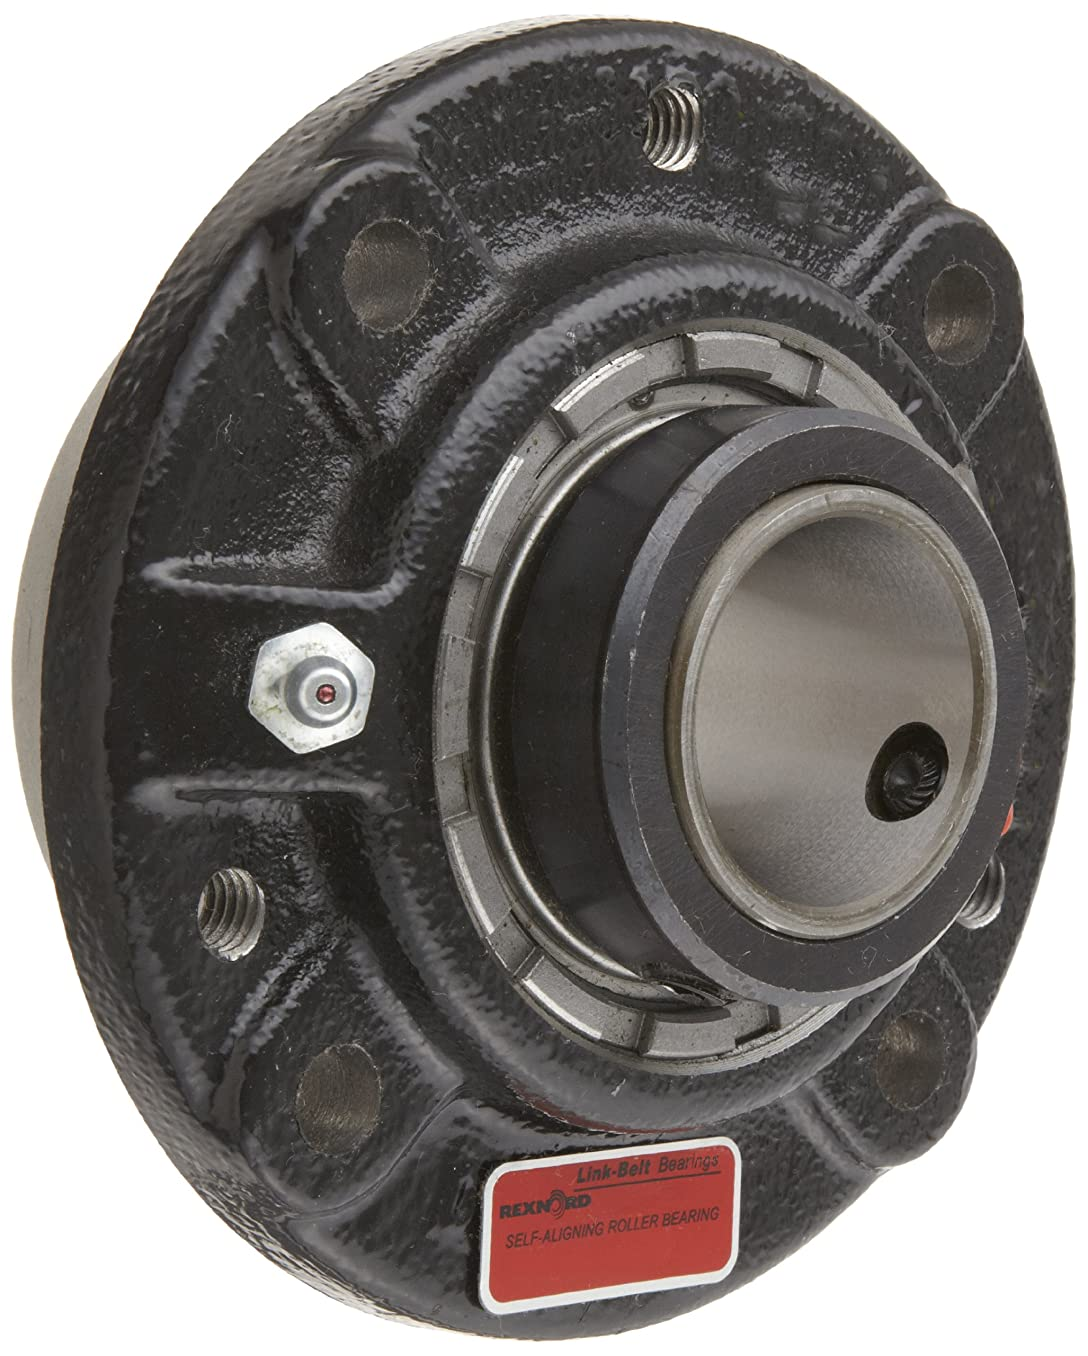 Link-Belt FCB22424H Spherical Roller Bearing Piloted Flange Unit, 4 Bolt Holes, Relubricatable, Non-Expansion, Cast Iron, Spring Locking Collar, Inch, 1-1/2